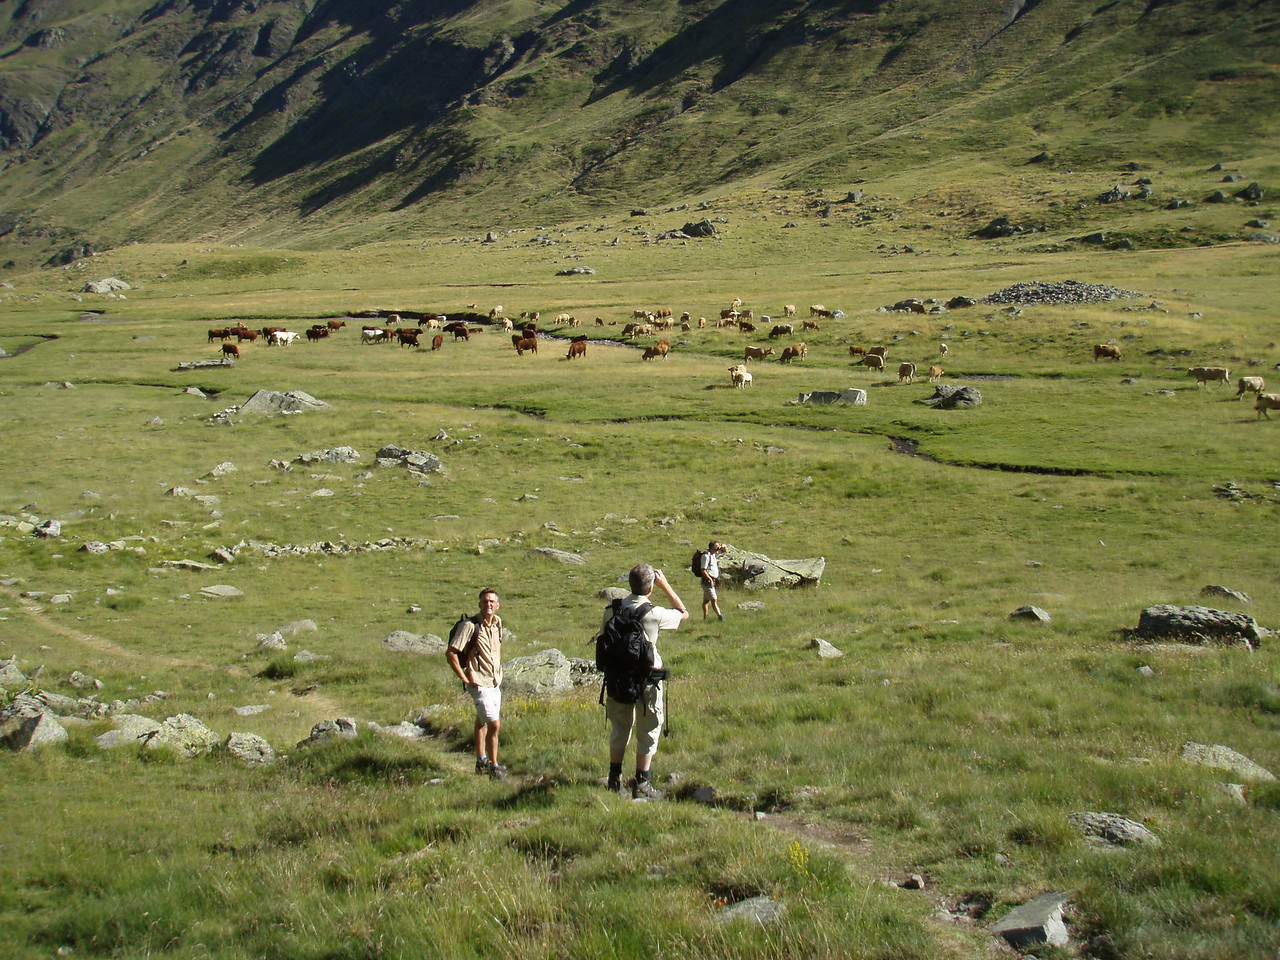 Cattle near Pico de Anayet